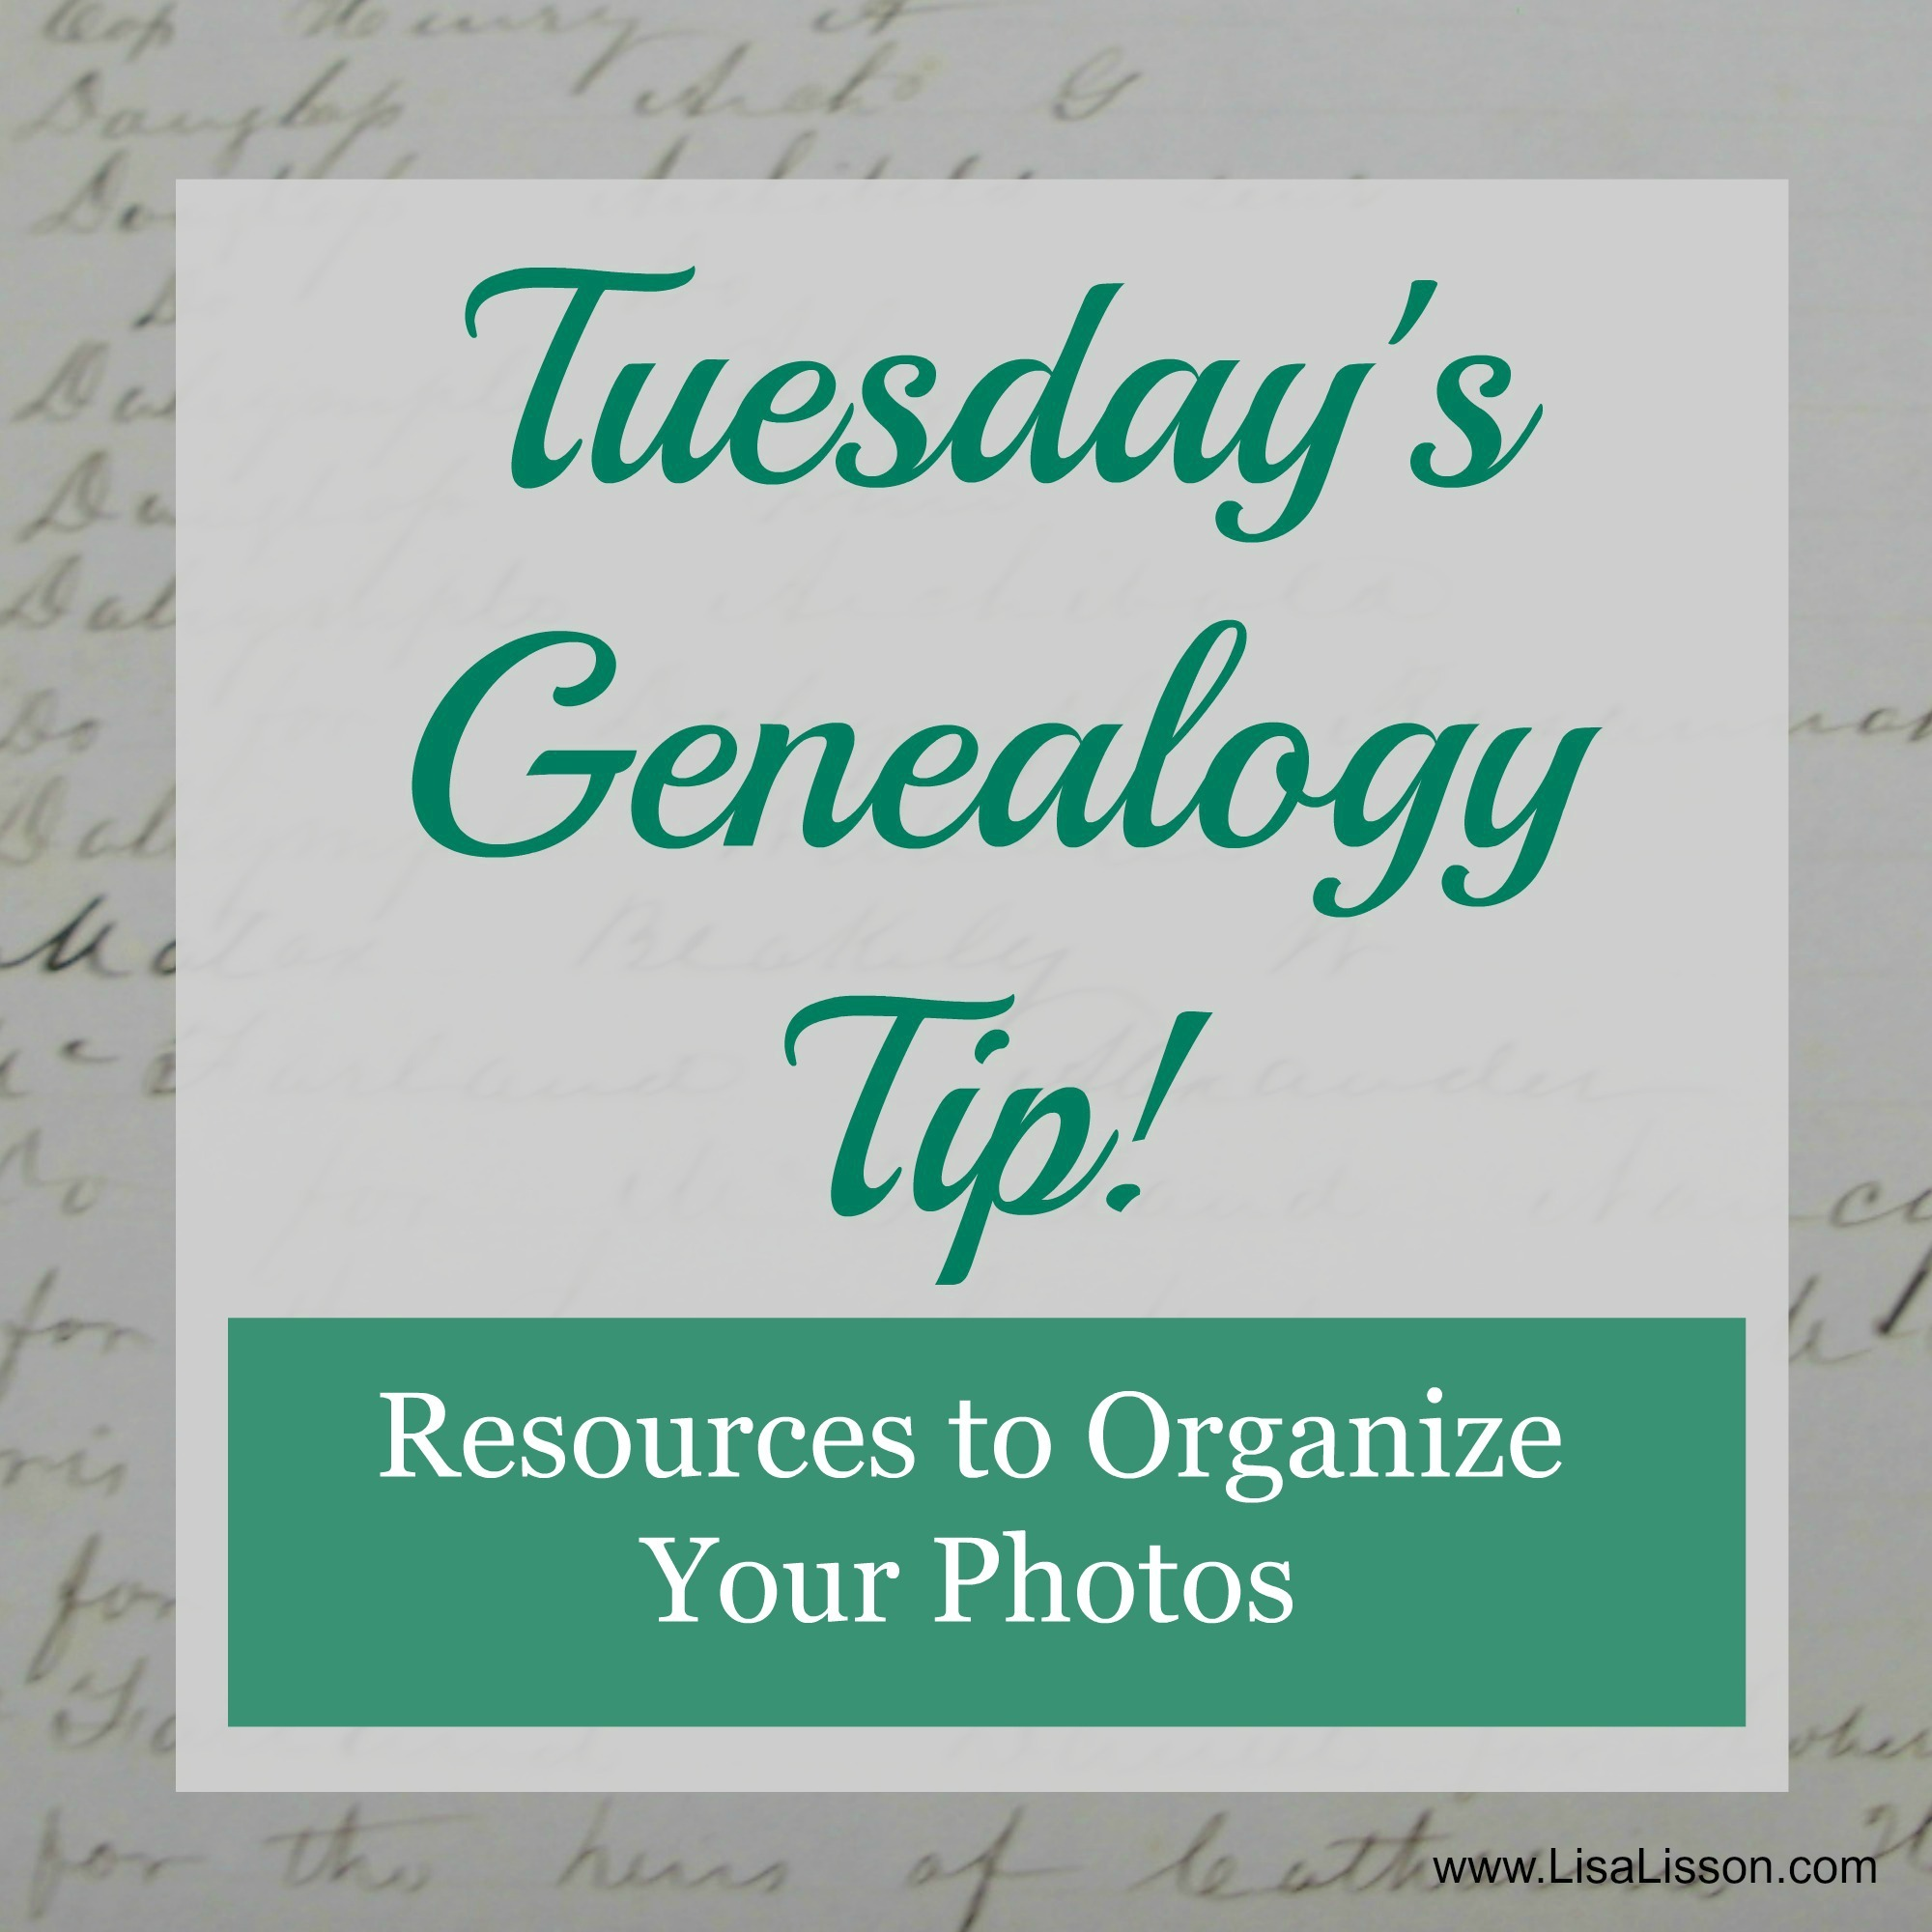 Tuesday's Genealogy Tip – Resources to Organize Your Photos!